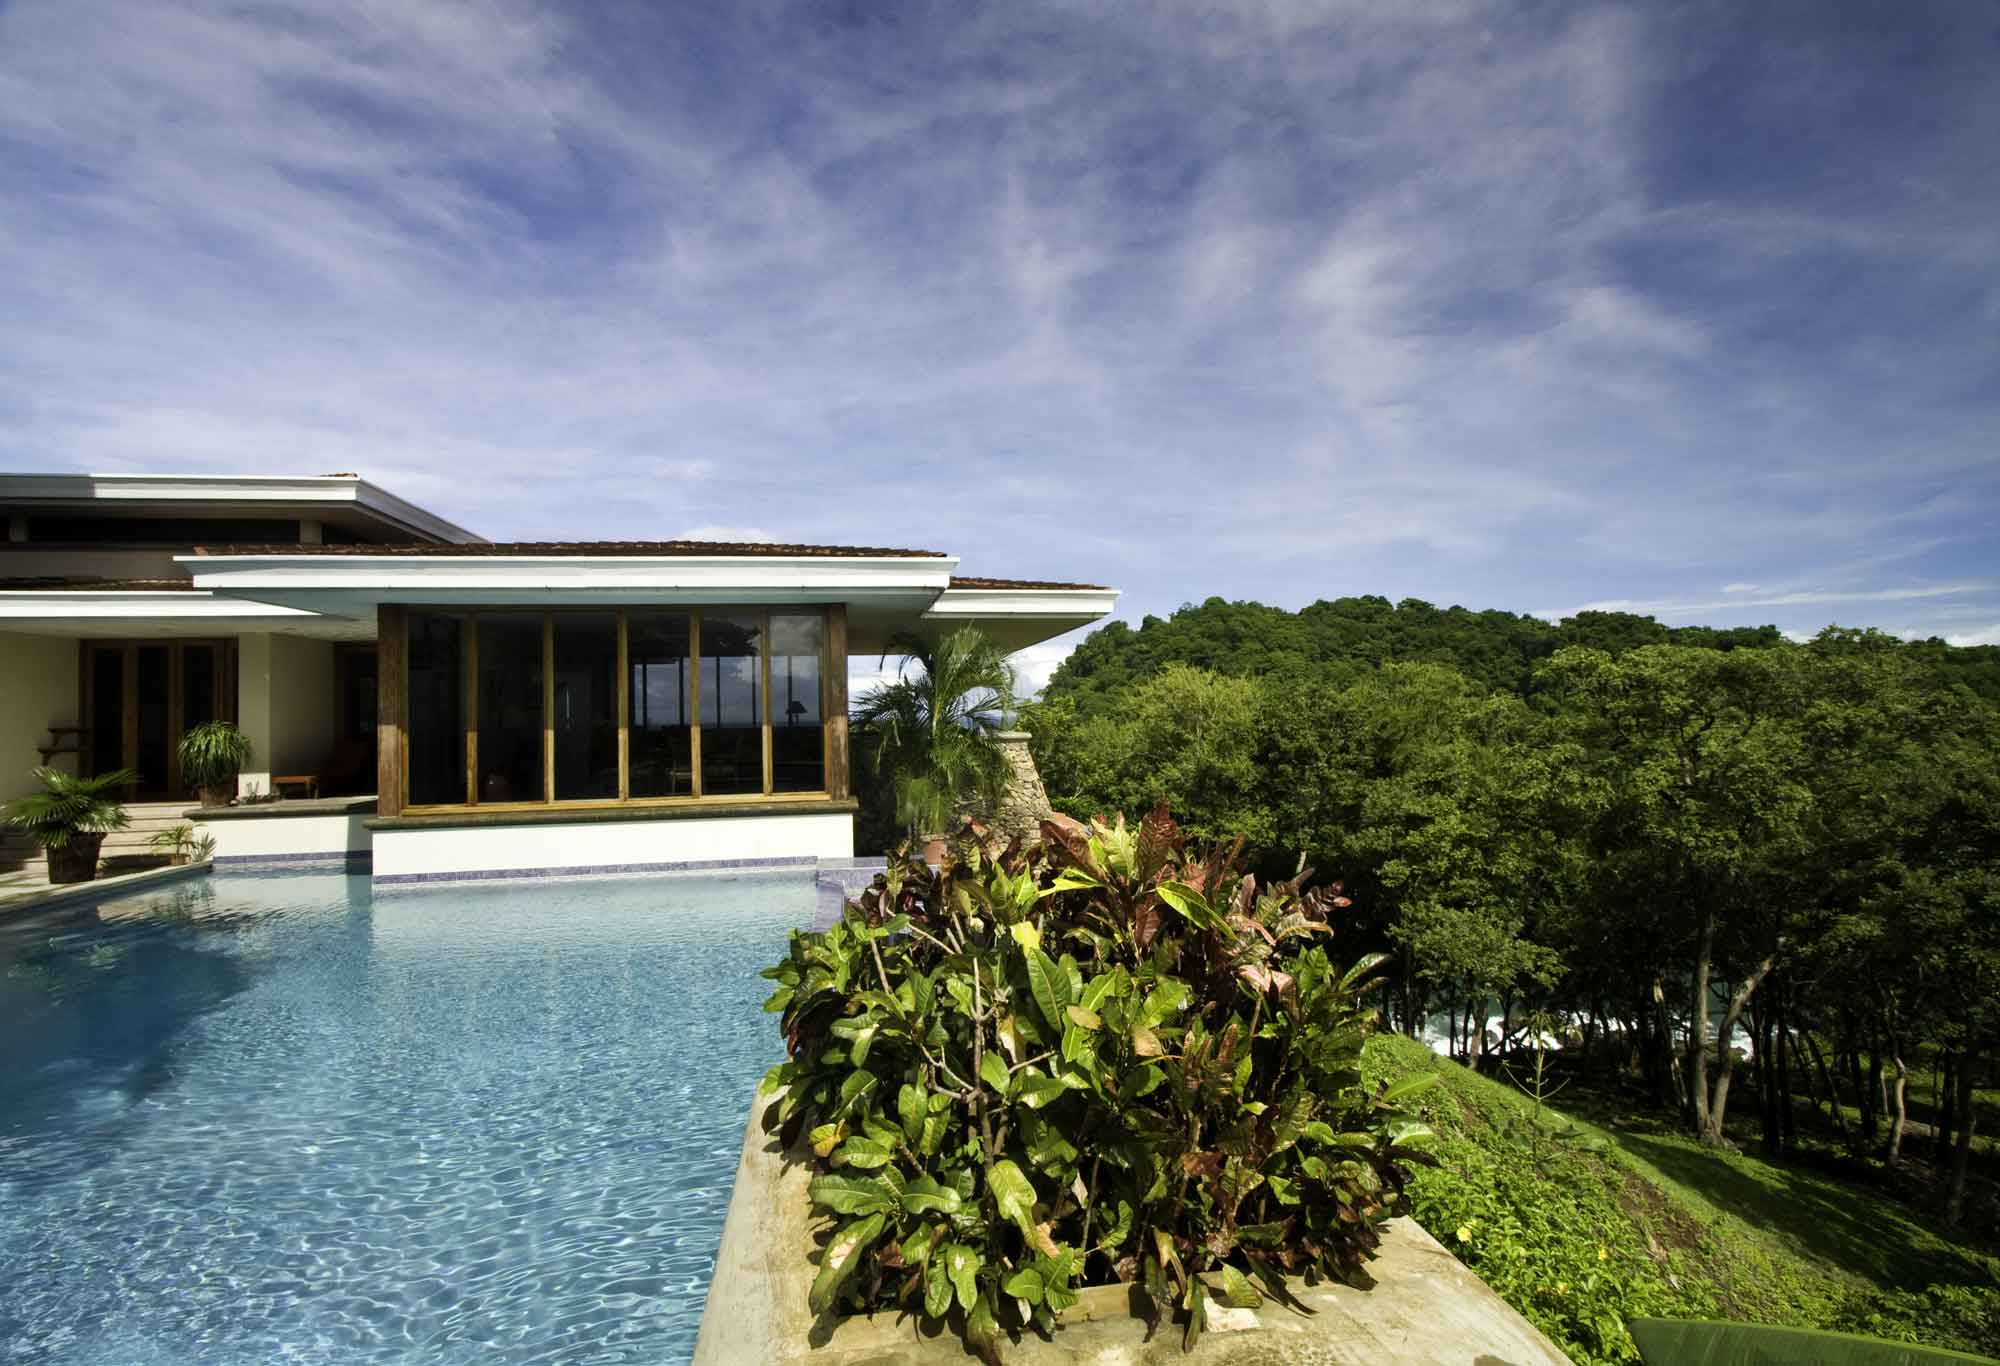 This stunning home in Guanacaste takes its cue from Wright's Fallingwater, projecting itself into the dramatic scenery.